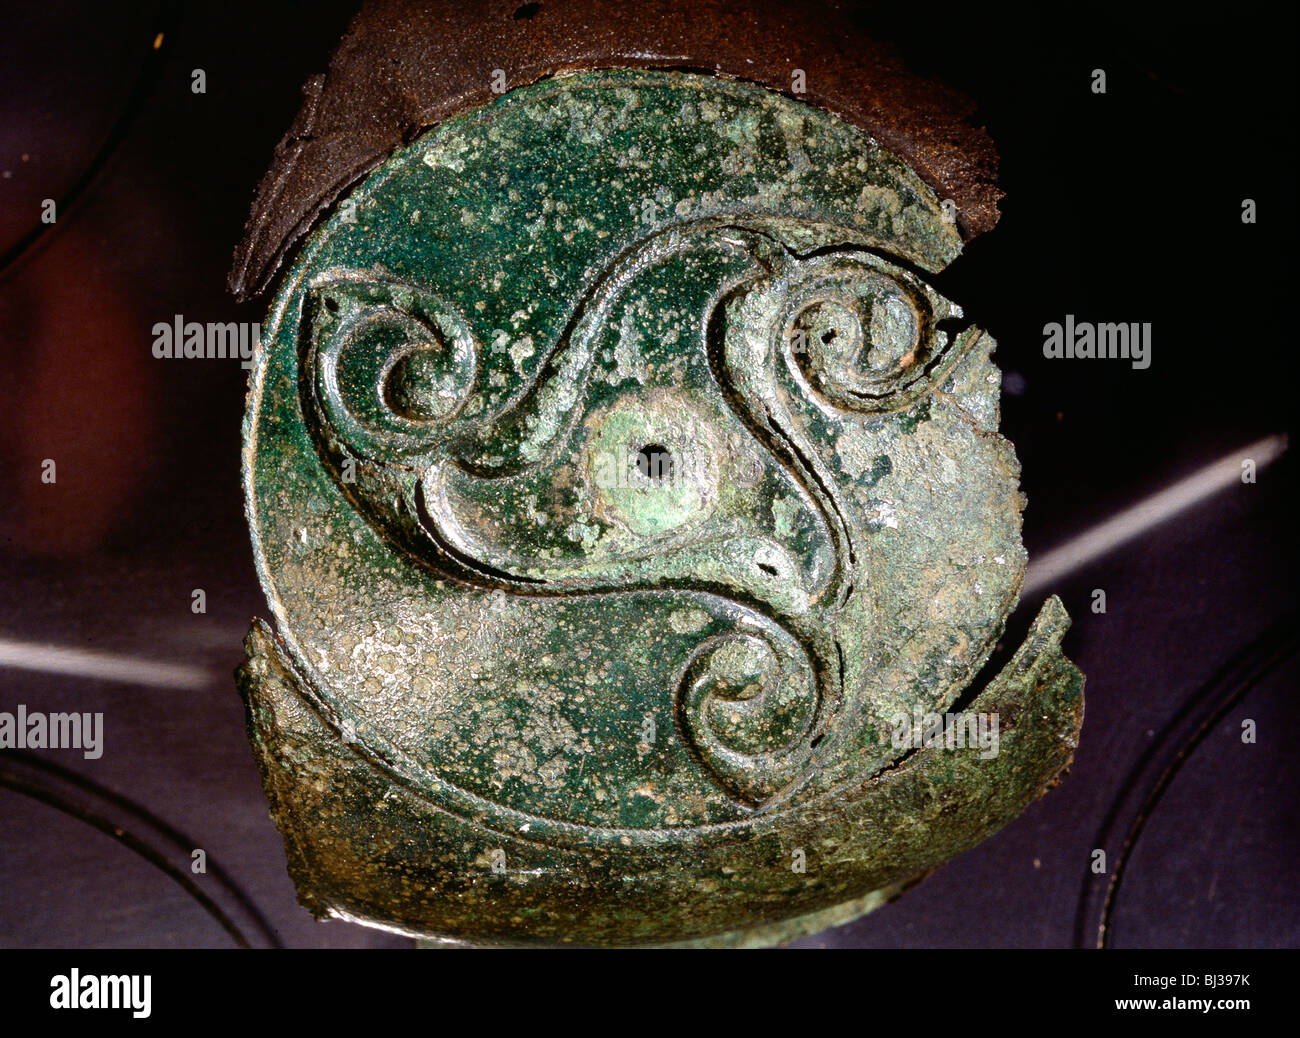 Detail of a bronze shield-mount, Ancient British, 5th century BC. Artist: Werner Forman - Stock Image